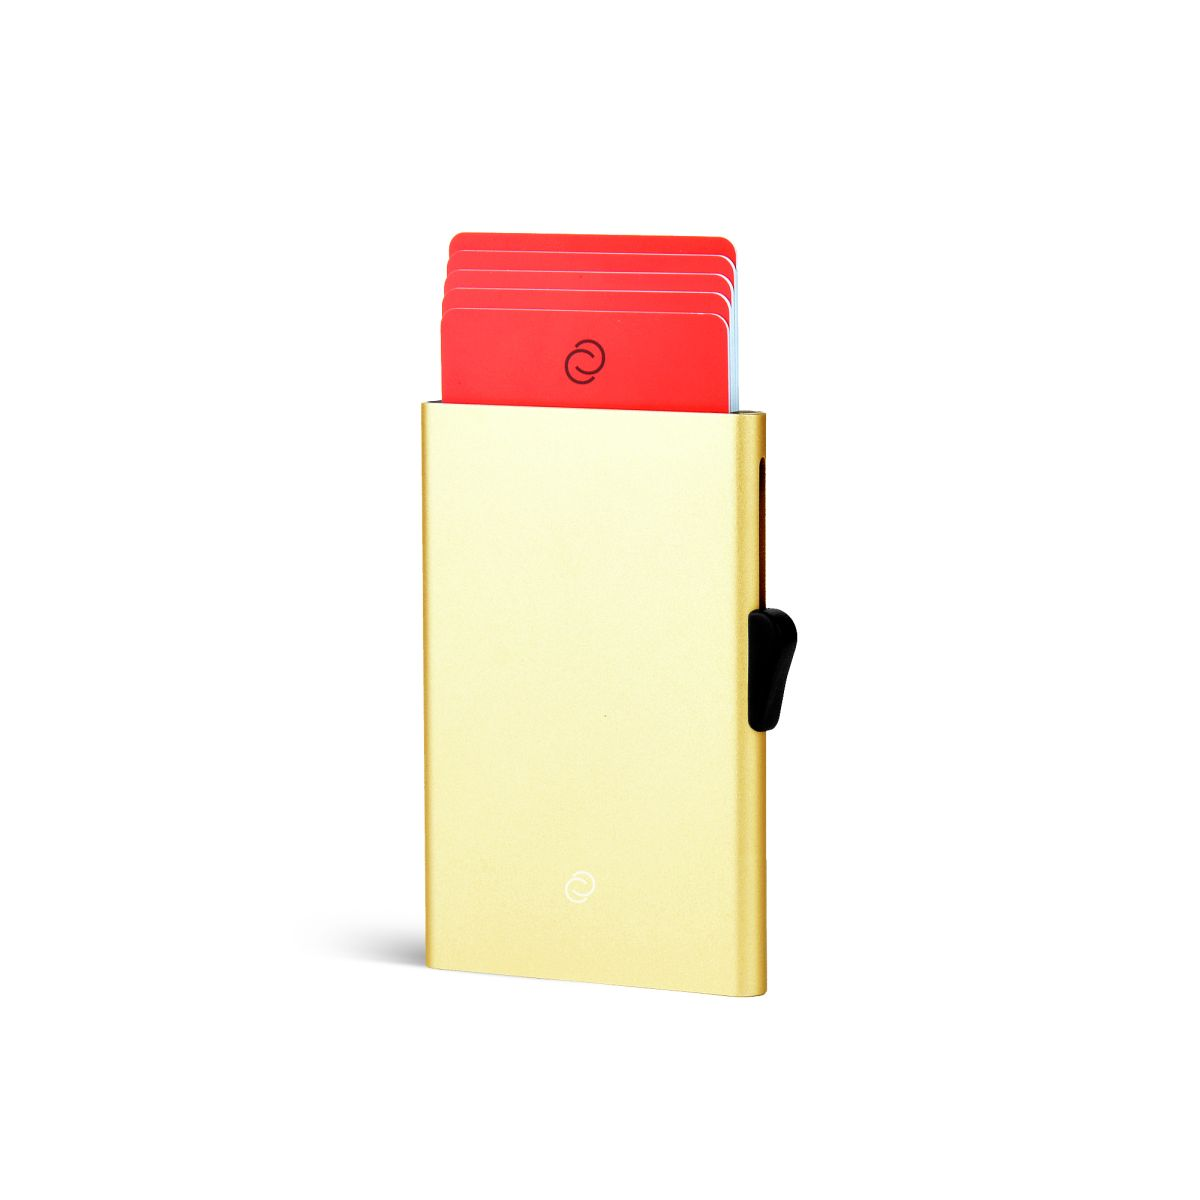 C-Secure Slim Aluminum Card Holder - Gold